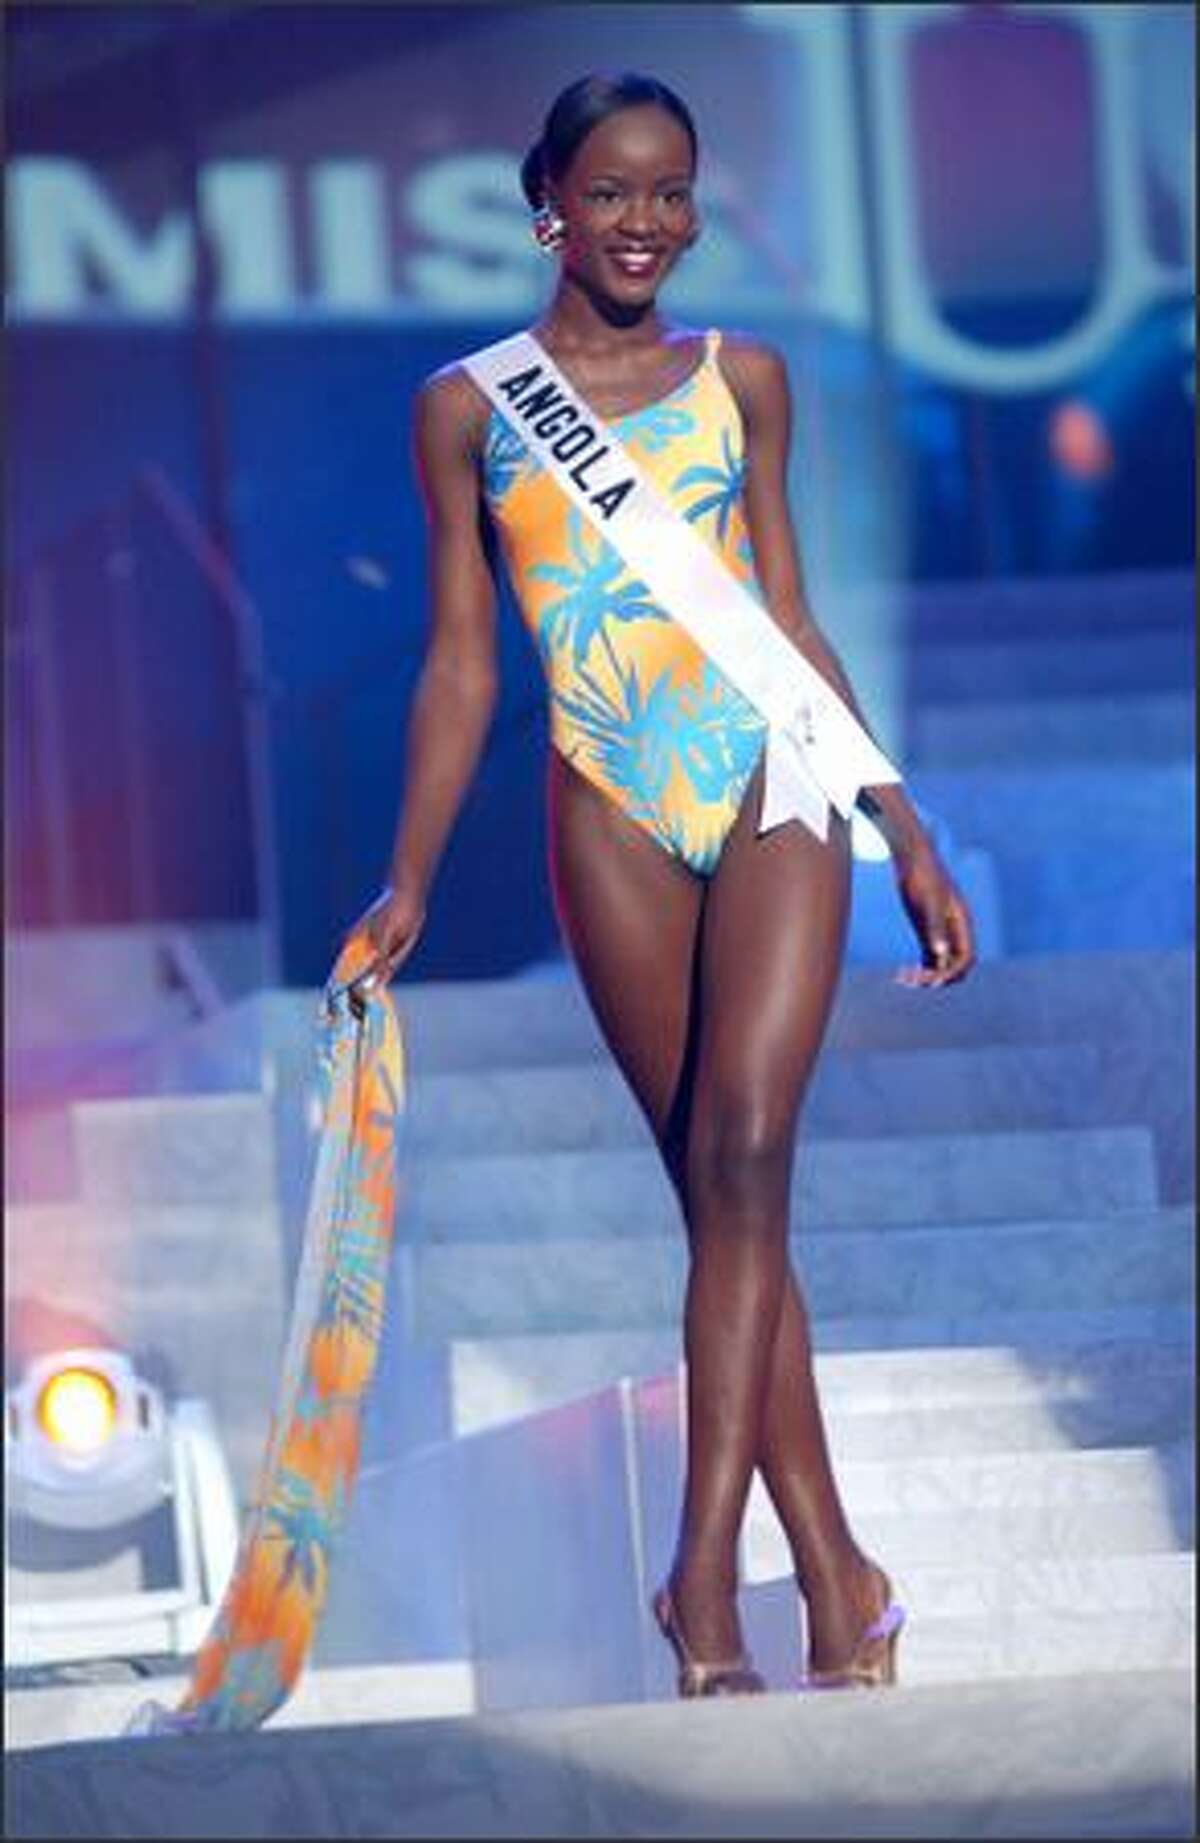 Telma de Jesus Esperanca Sonhi, Miss Angola, competes in her Endless Sun swimsuit during the 2004 Miss Universe Presentation Show on May 27 at CEMEXPO in Quito, Ecuador. Each delegate is judged by a preliminary panel of distinguished judges in three categories consisting of individual interview, swimsuit competition and evening gown competition. The scores will be tallied and the top 15 delegates will be announced during the NBC broadcast of the 53rd annual Miss Universe competition on June 1 at 9 p.m. (delayed PT).